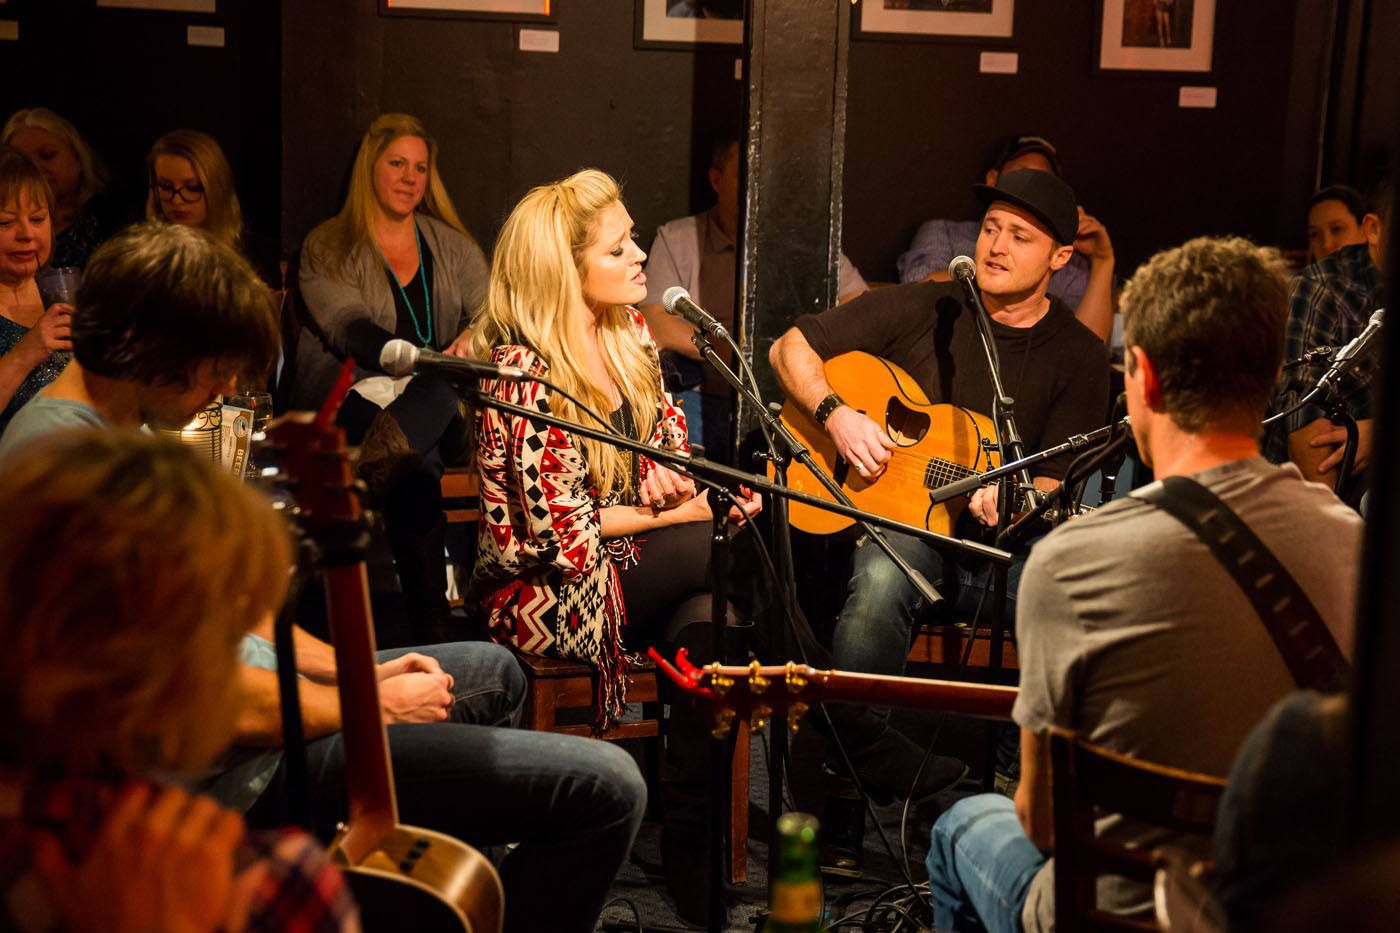 Two Story Road at Bluebird Cafe